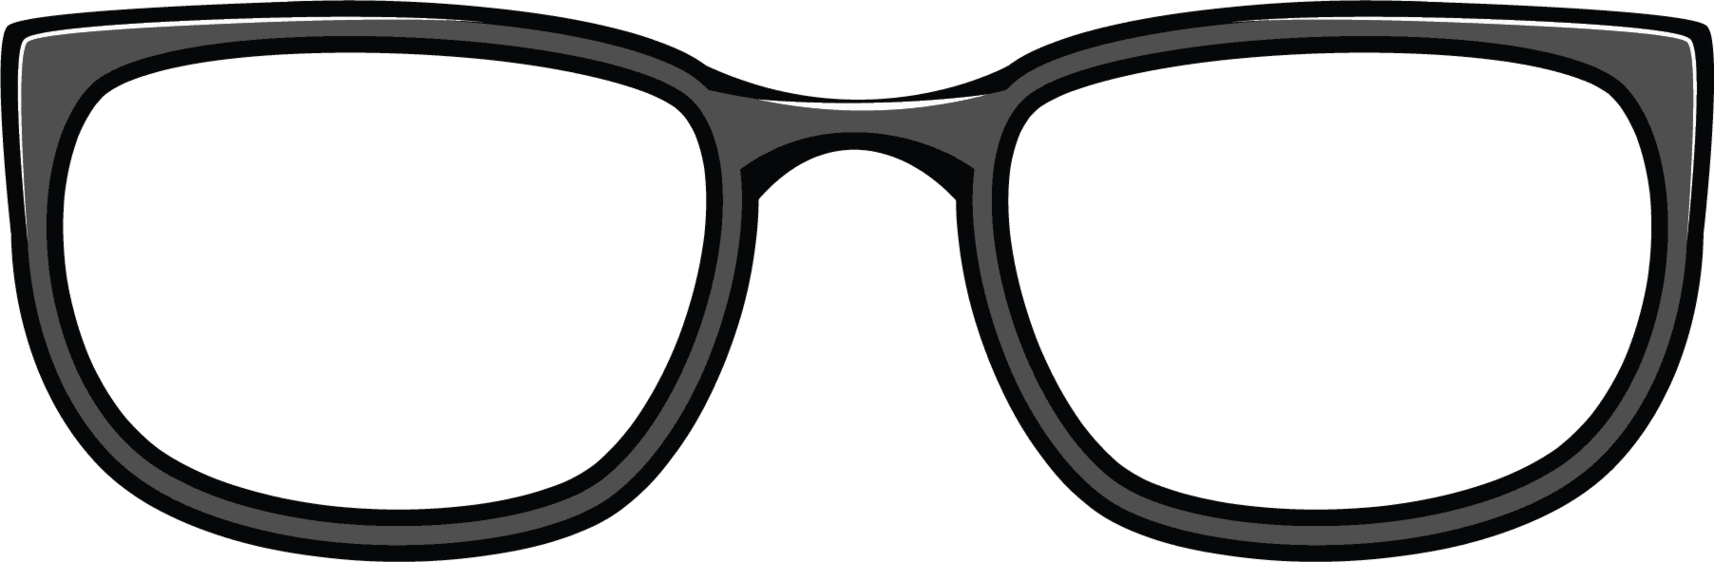 Glasses clipart #6, Download drawings